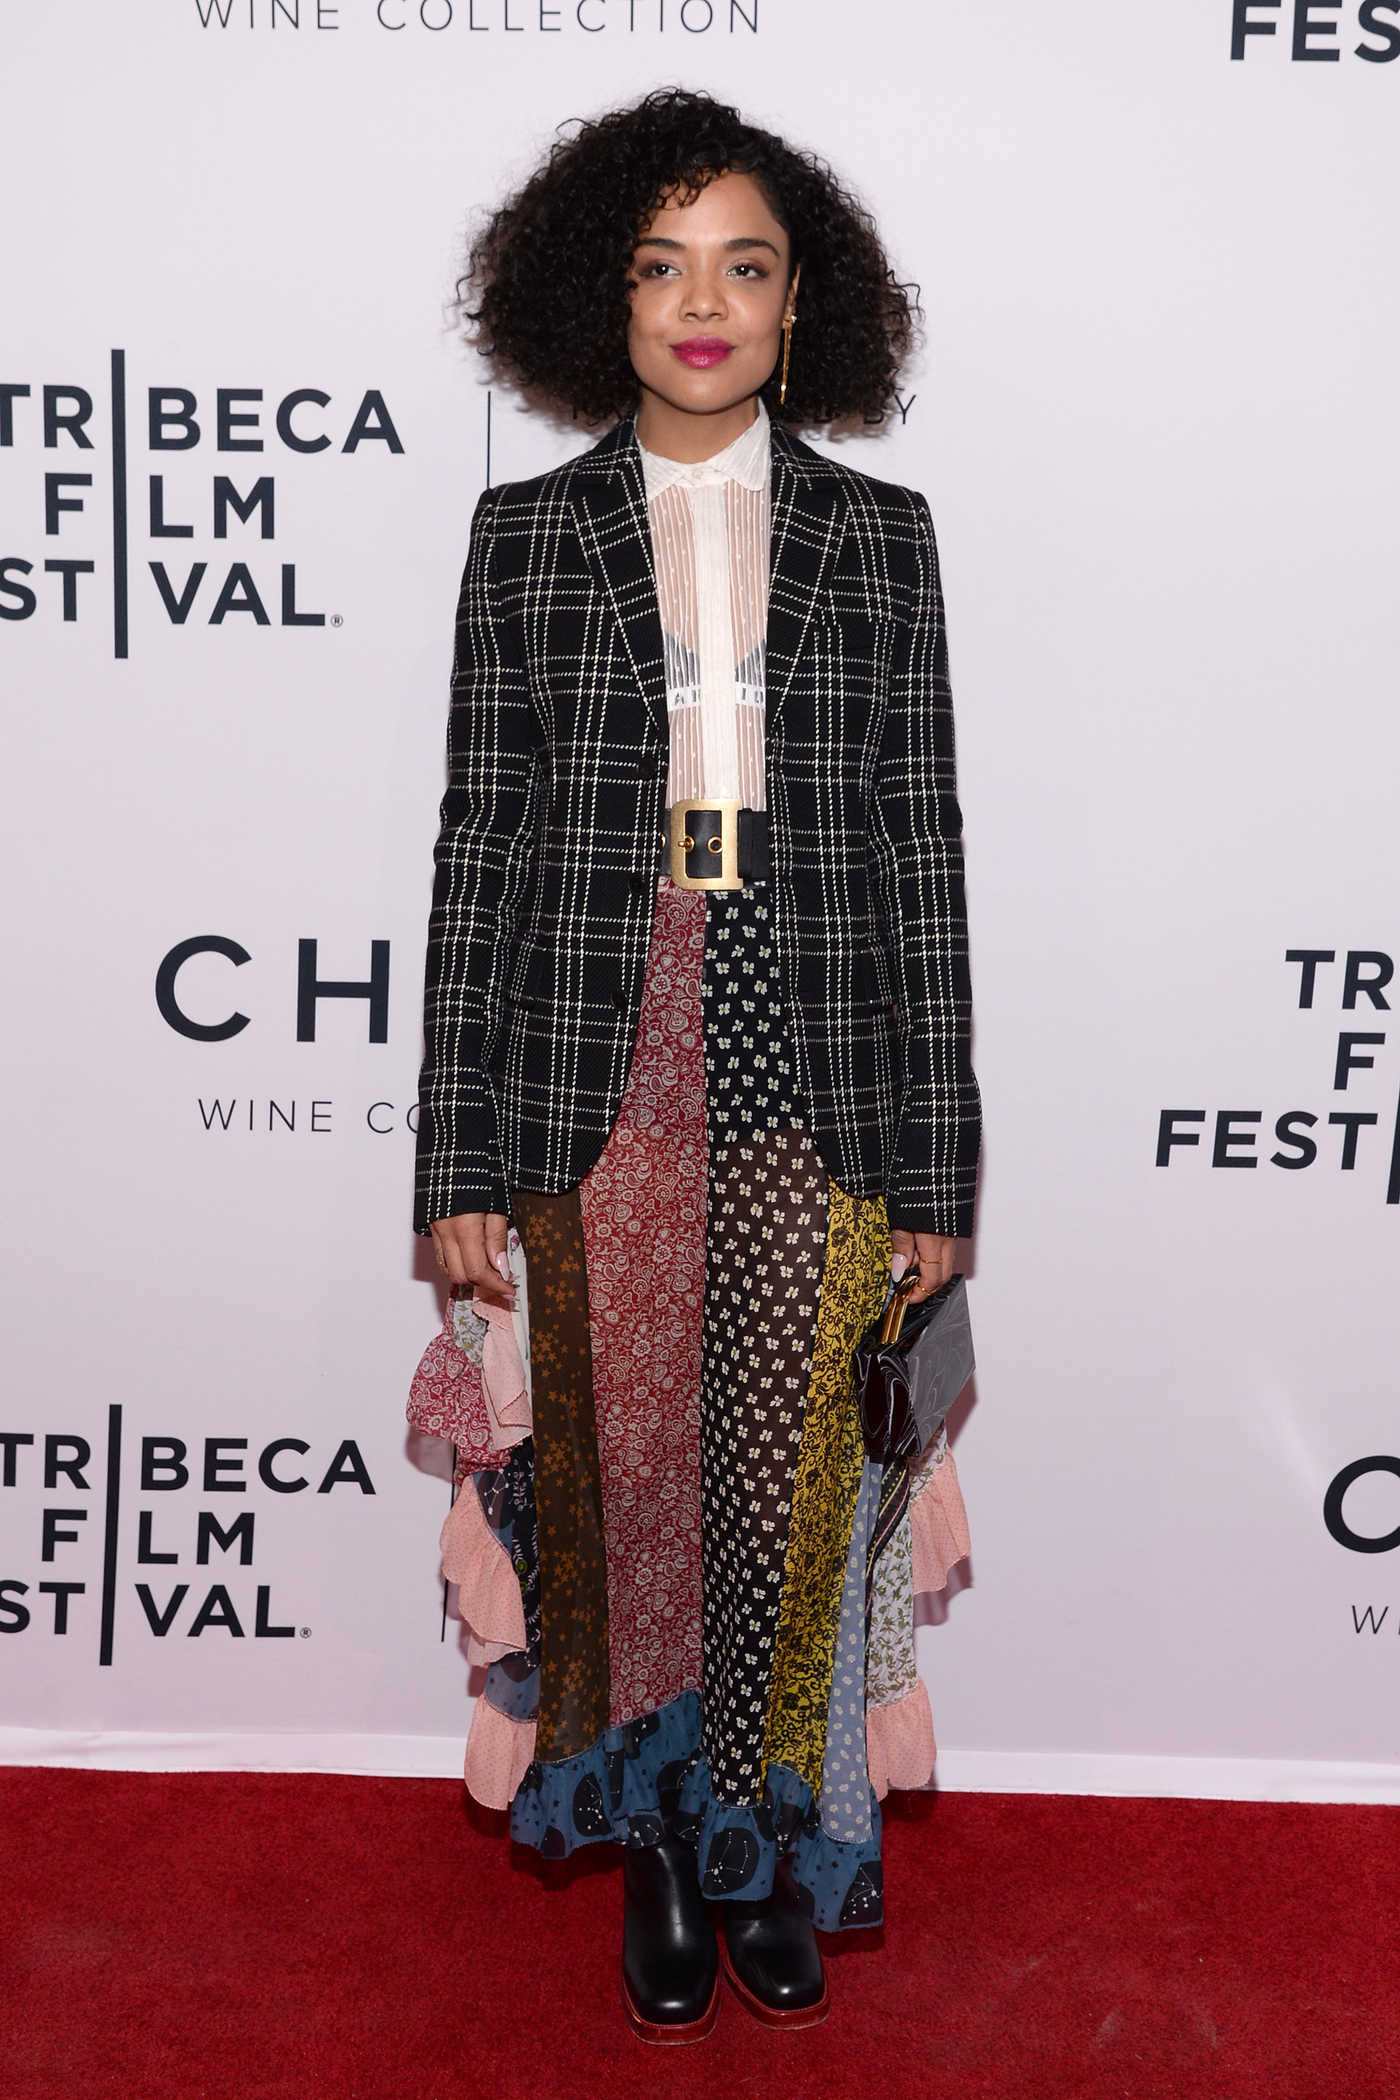 Tessa Thompson at the Little Woods Screening During the Tribeca Film Festival in New York City 04/21/2018